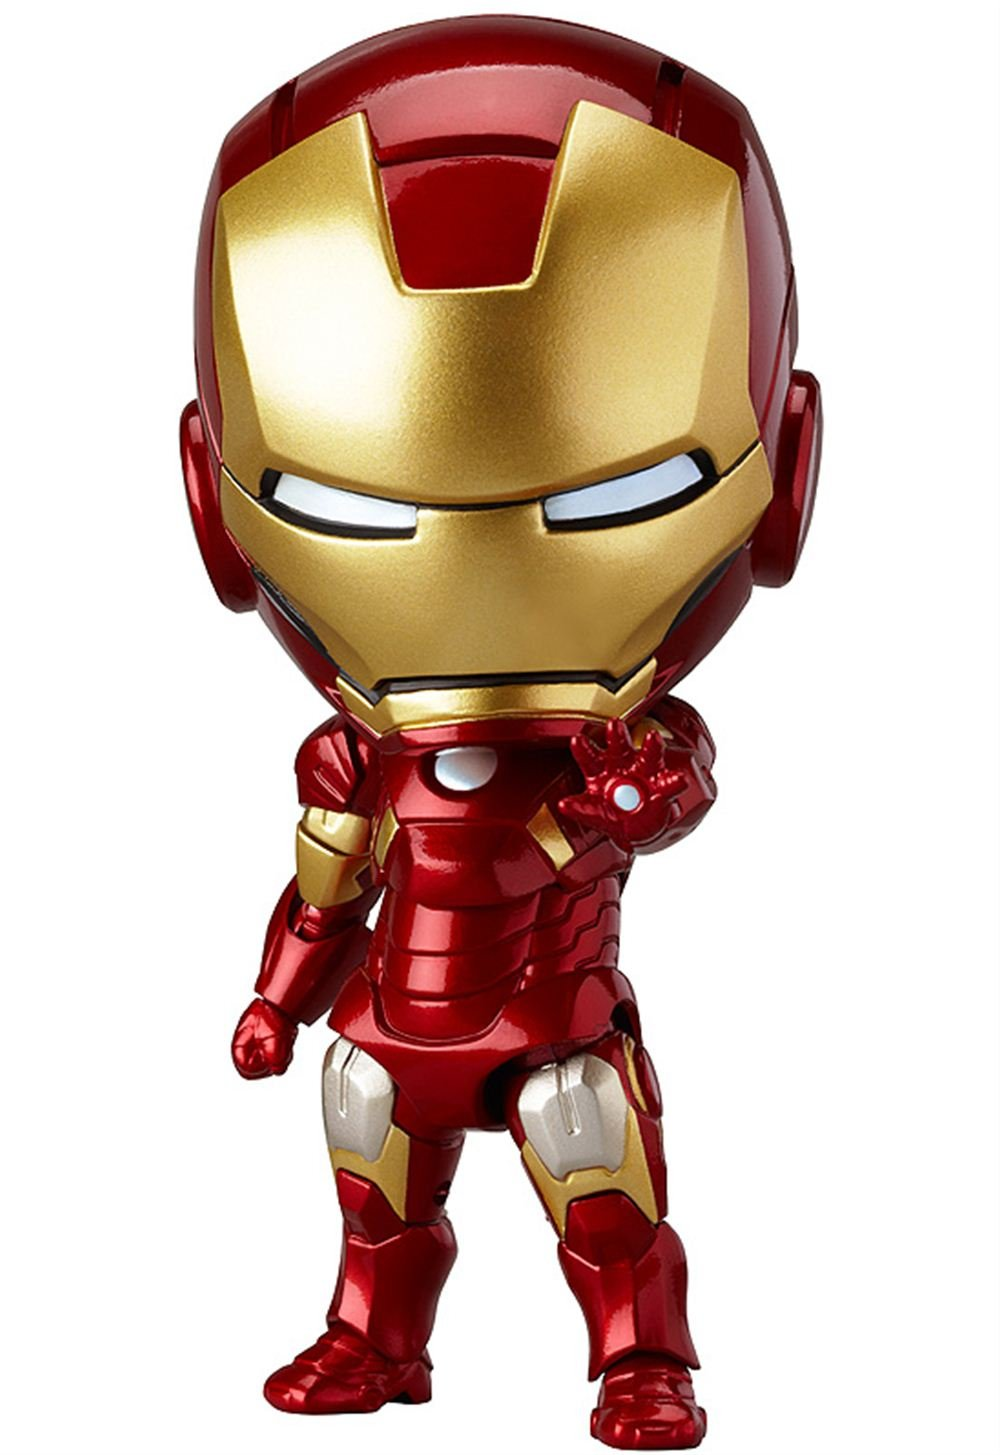 Mark Vii Iron Man 3 Game Iron Man Mark Vii